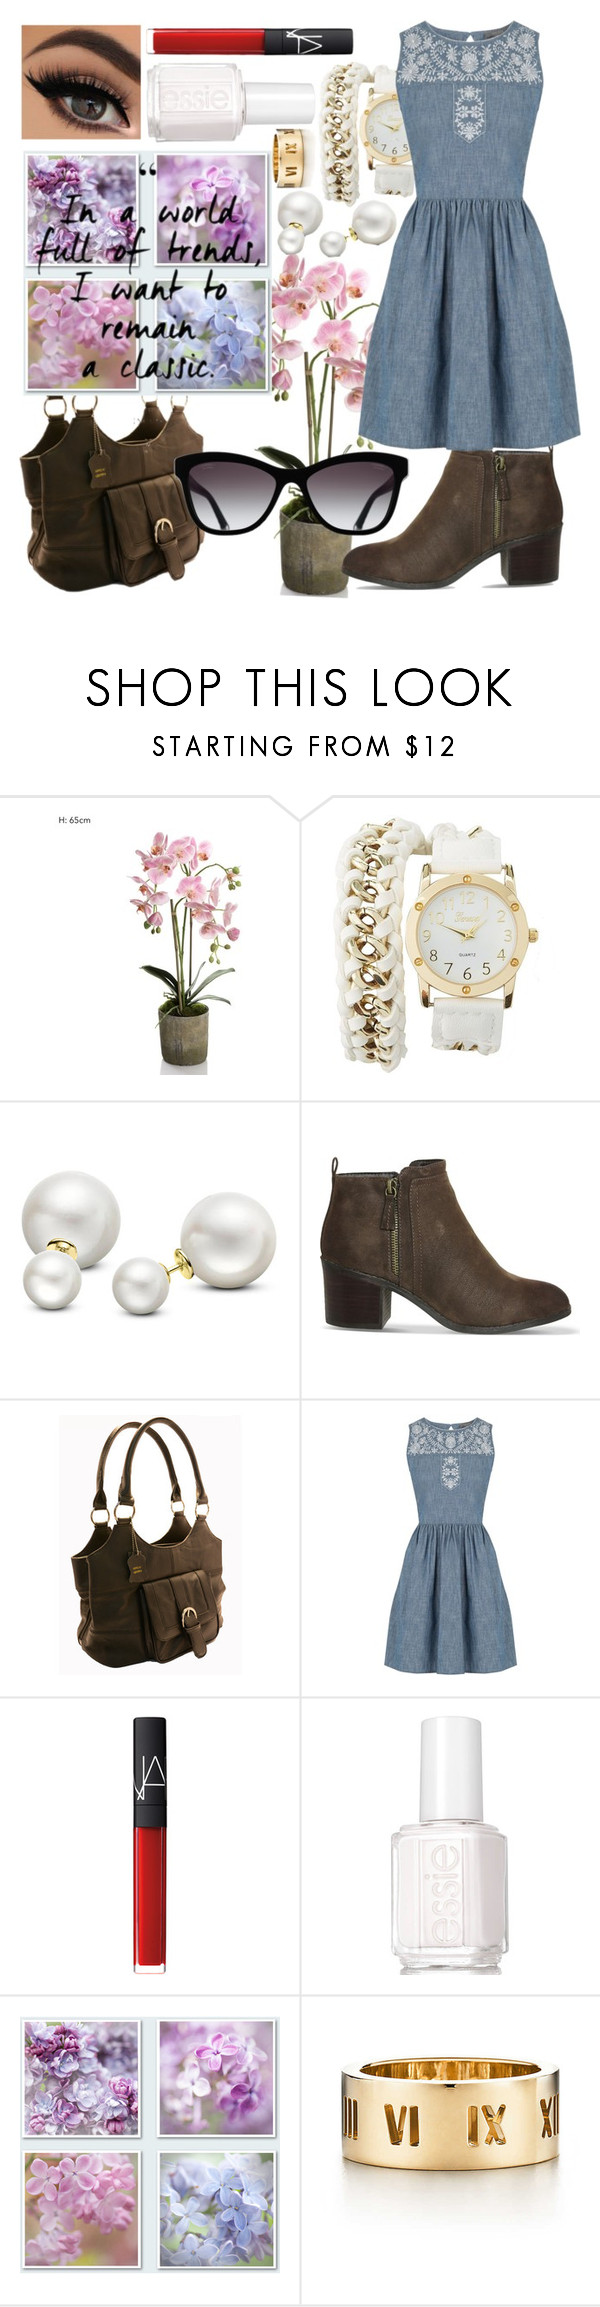 """""""Remain a Classic"""" by wisdomgoddess22 ❤ liked on Polyvore featuring beauty, Charlotte Russe, Allurez, Office, Oasis, NARS Cosmetics, Essie, Chanel and Tiffany & Co."""